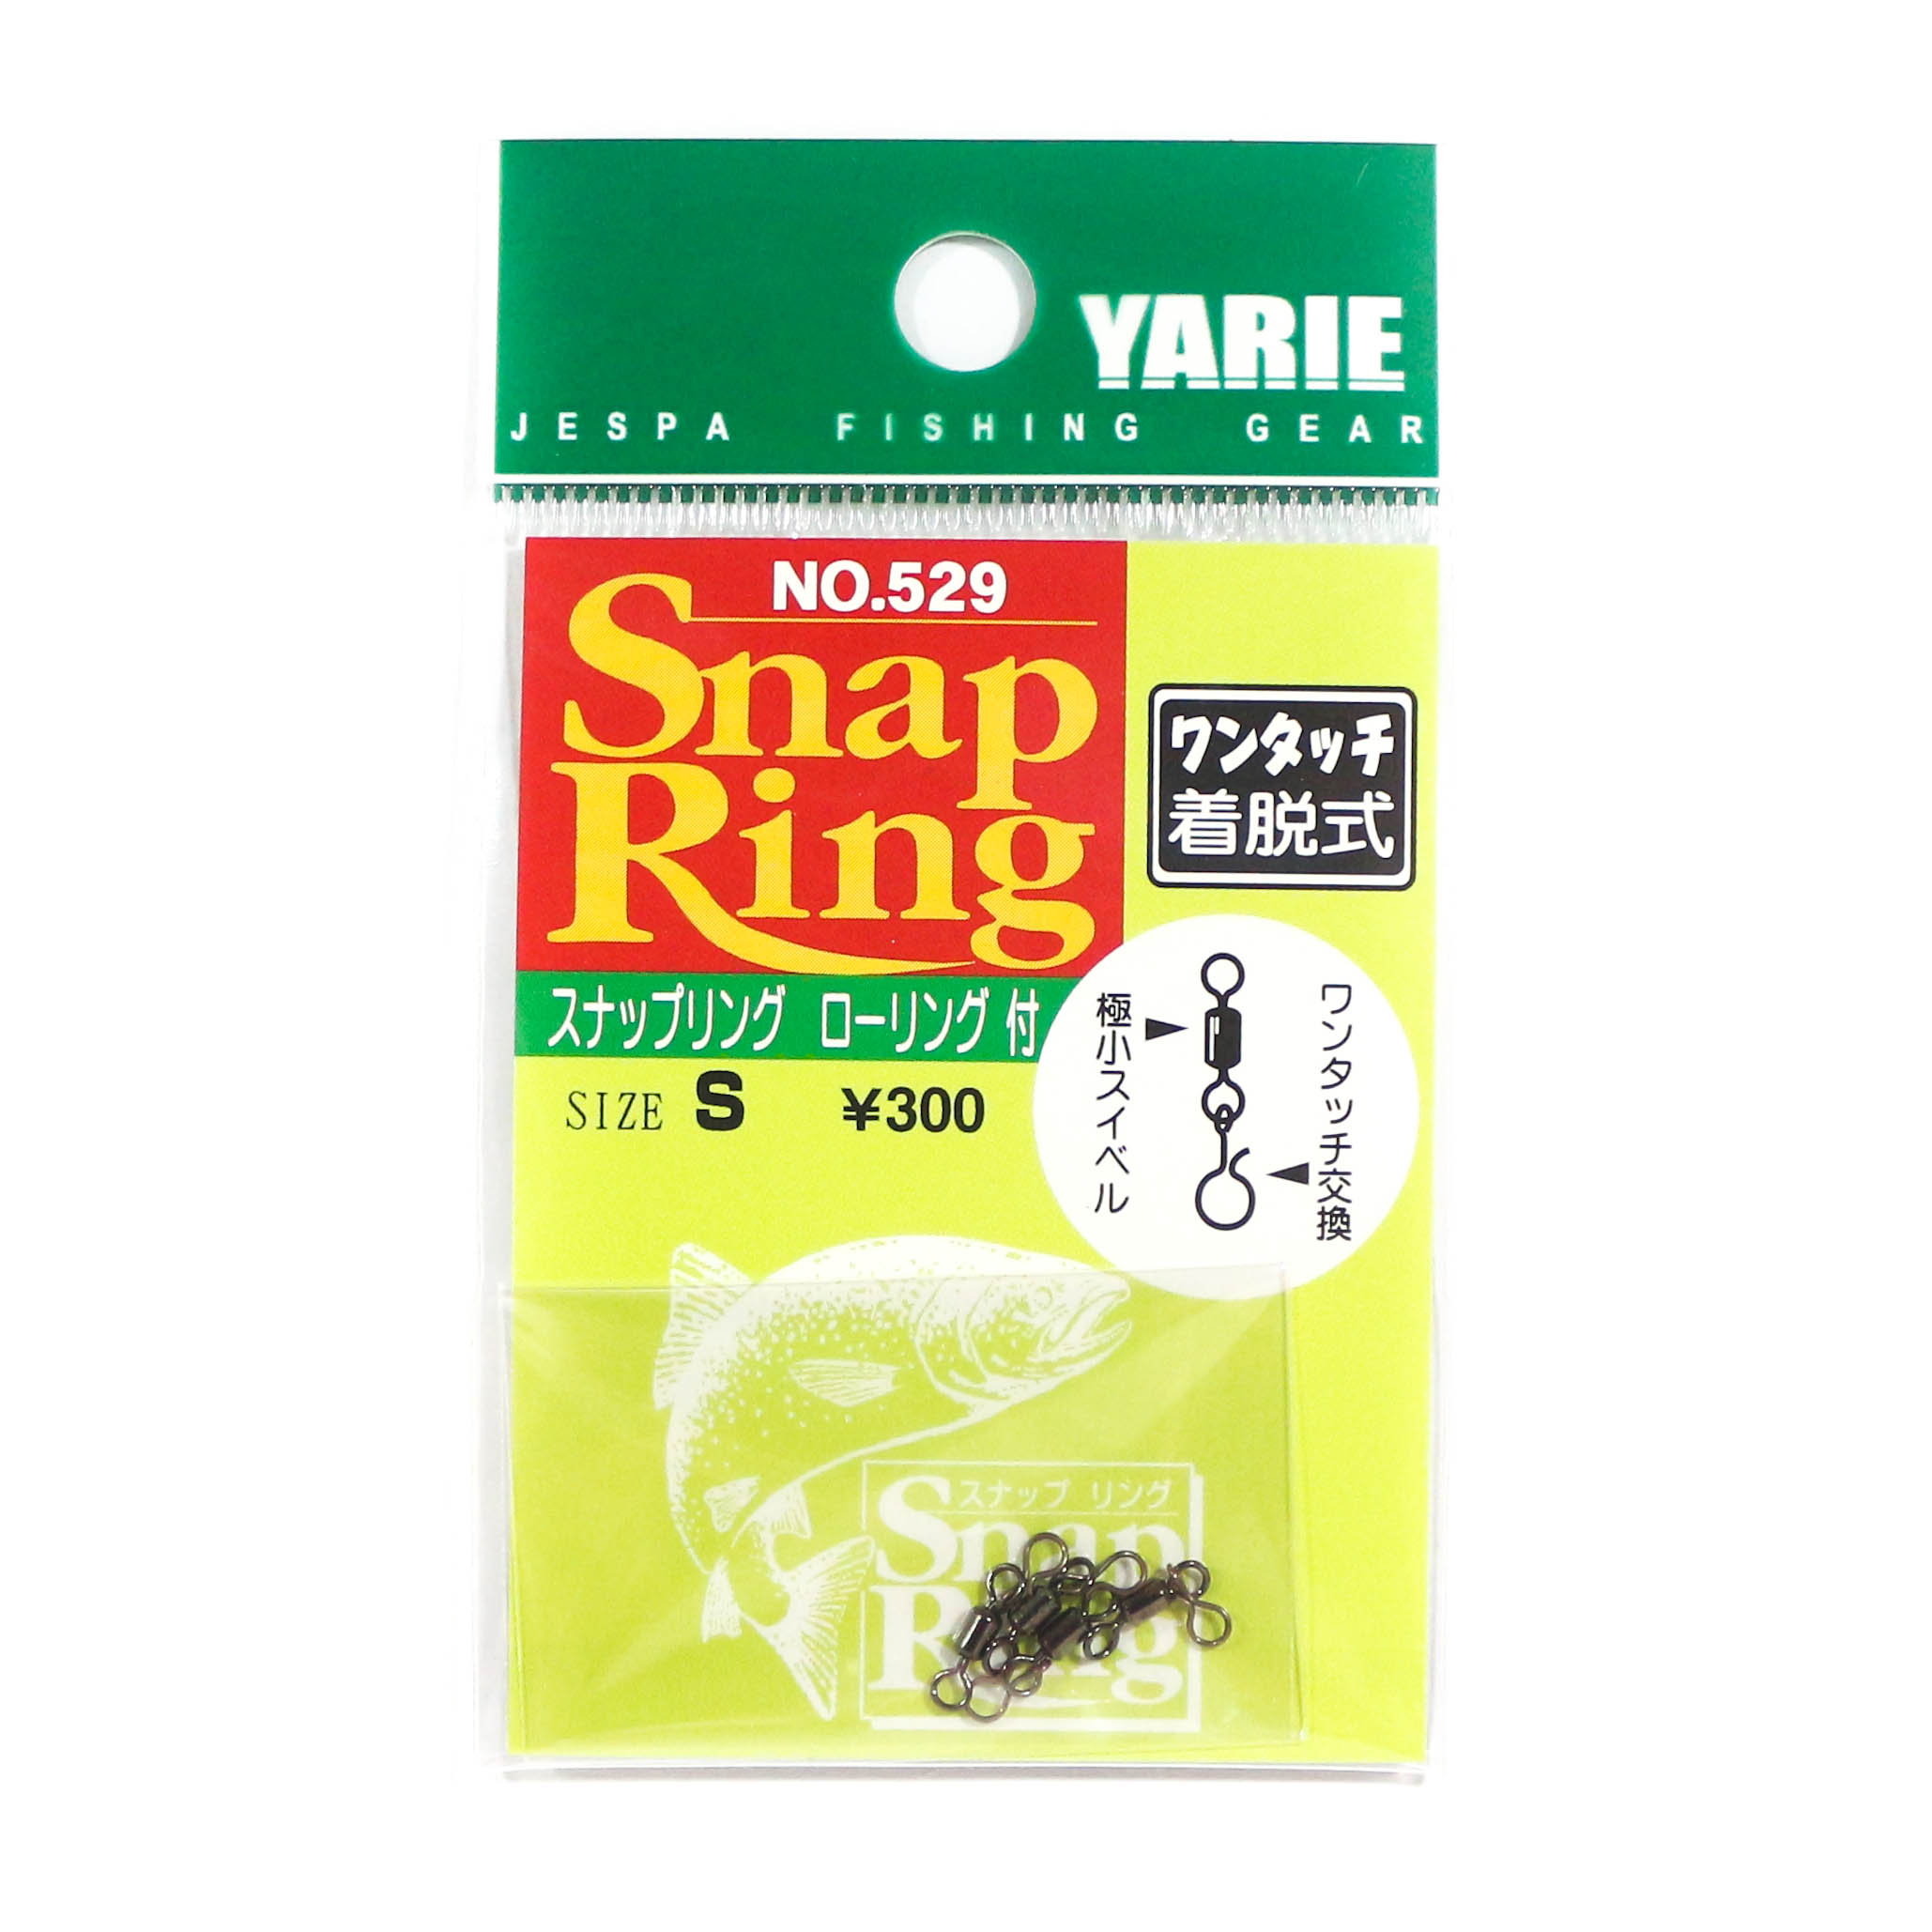 Yarie Jespa M. 529 Swivel Quick Snap Ring Small Lures 5 lb Test Size S (3703)